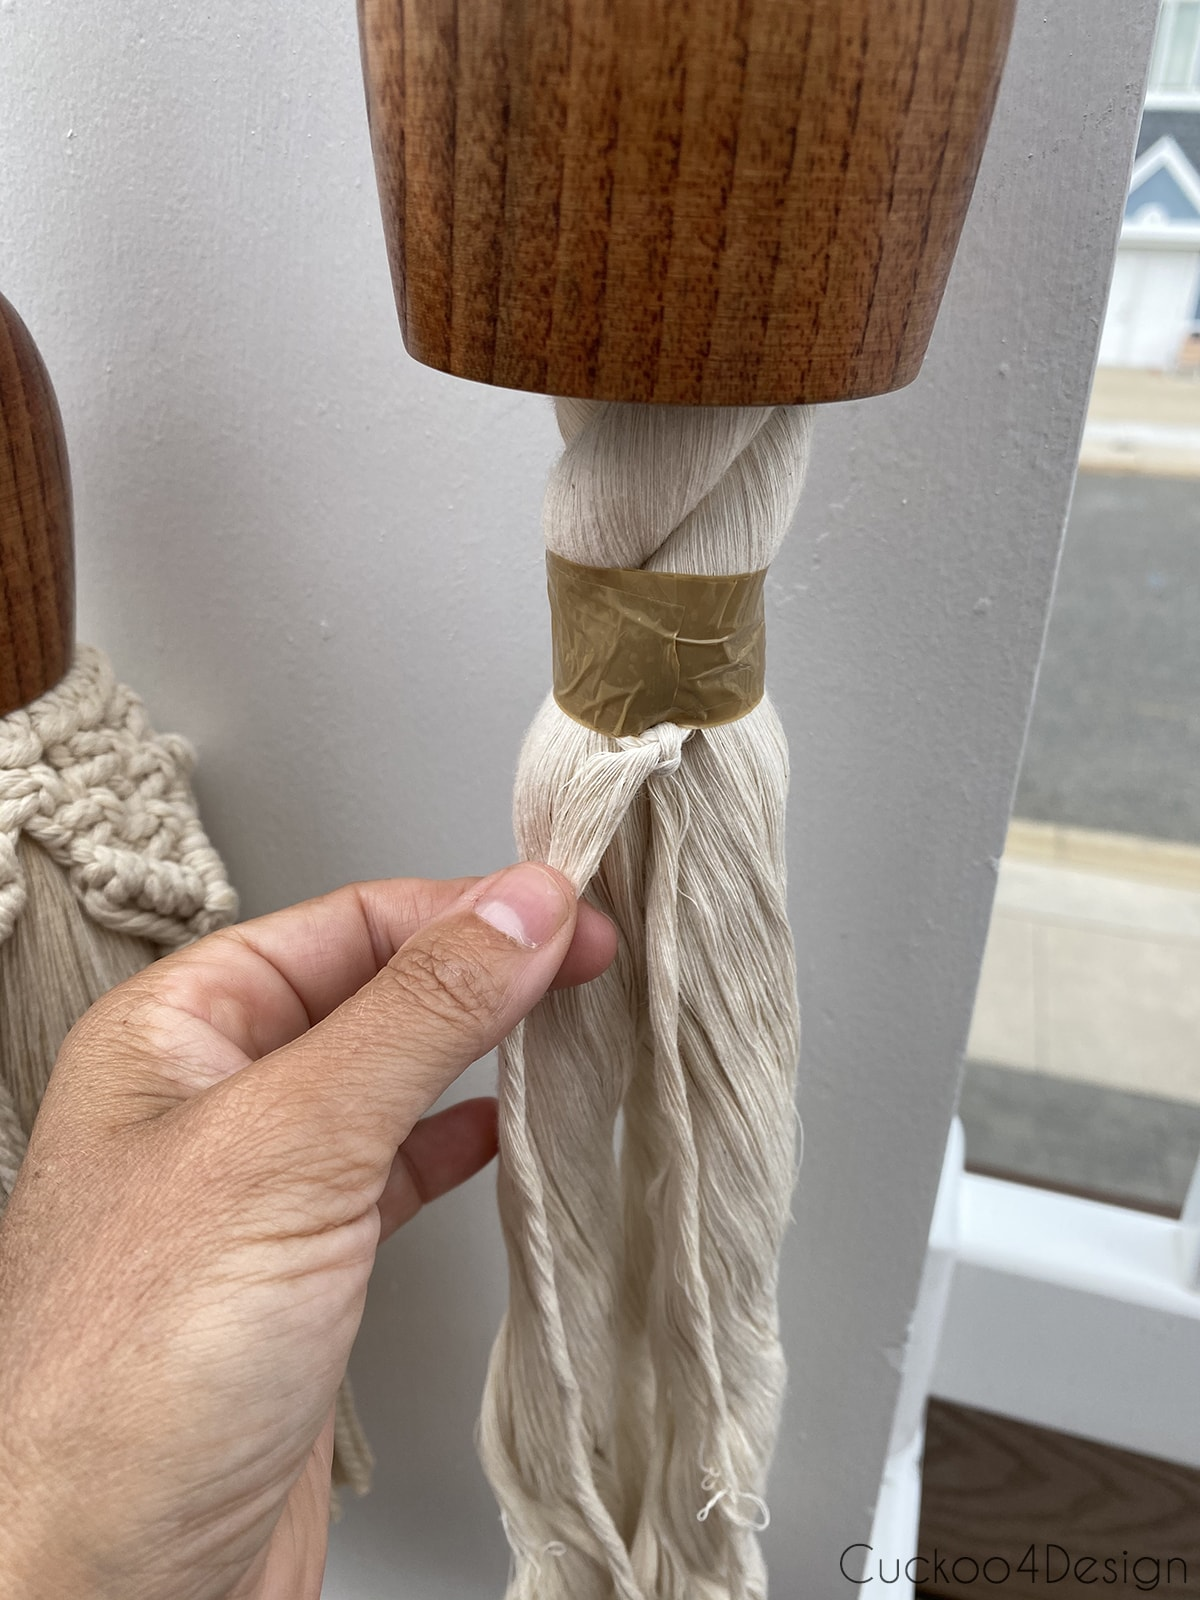 knotting pieces of cotton rope